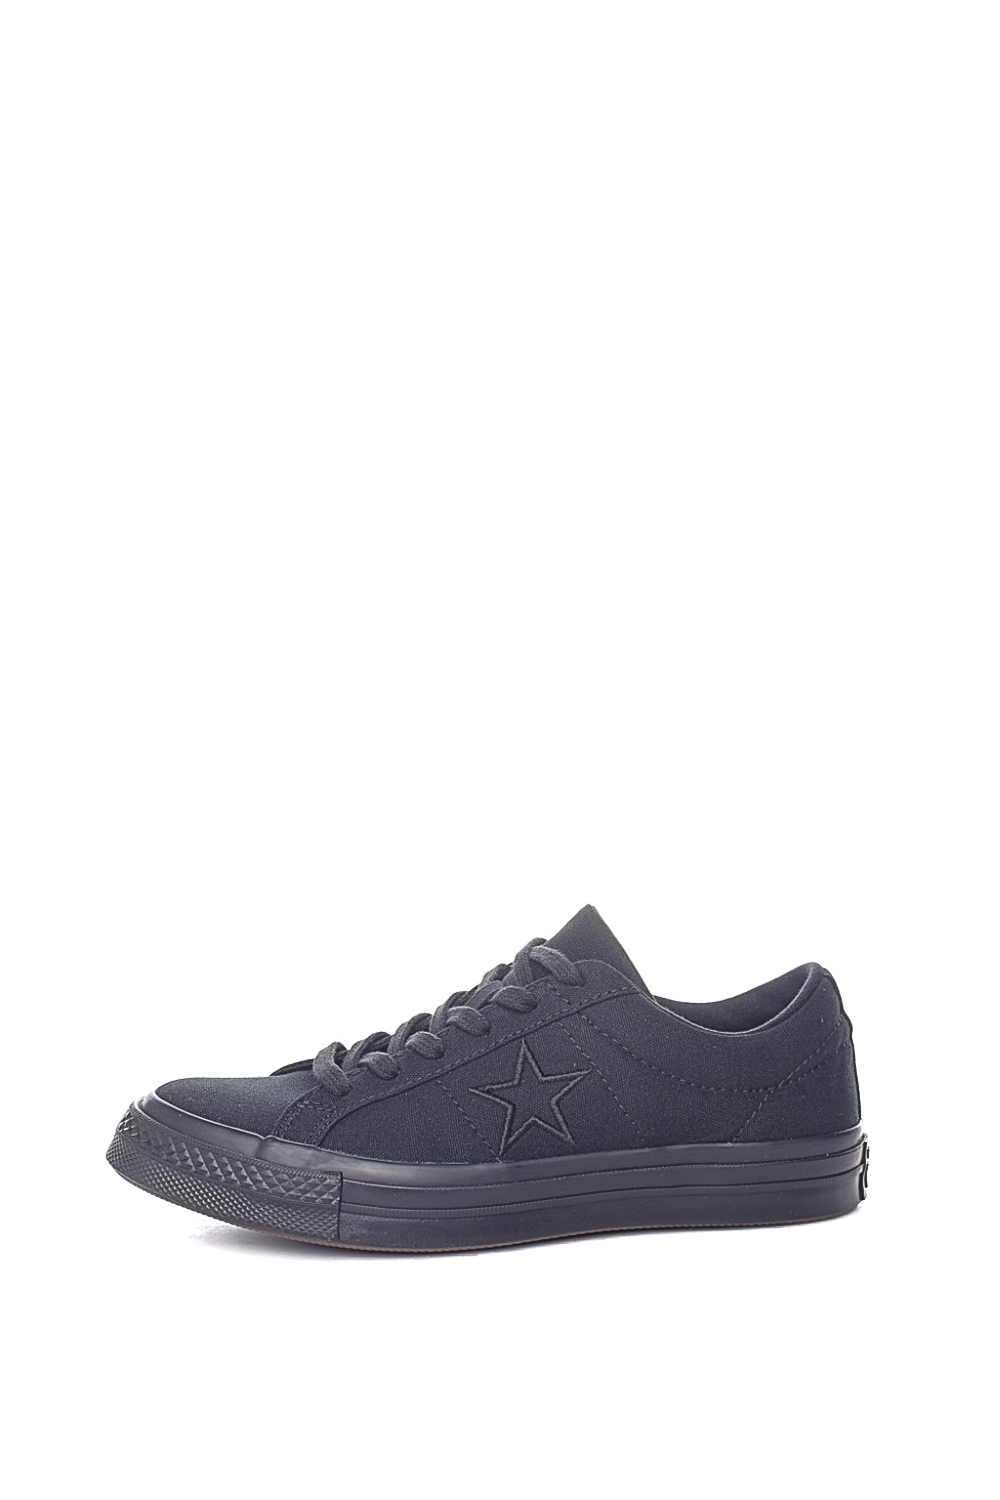 CONVERSE – Unisex sneakers CONVERSE One Star μαύρα